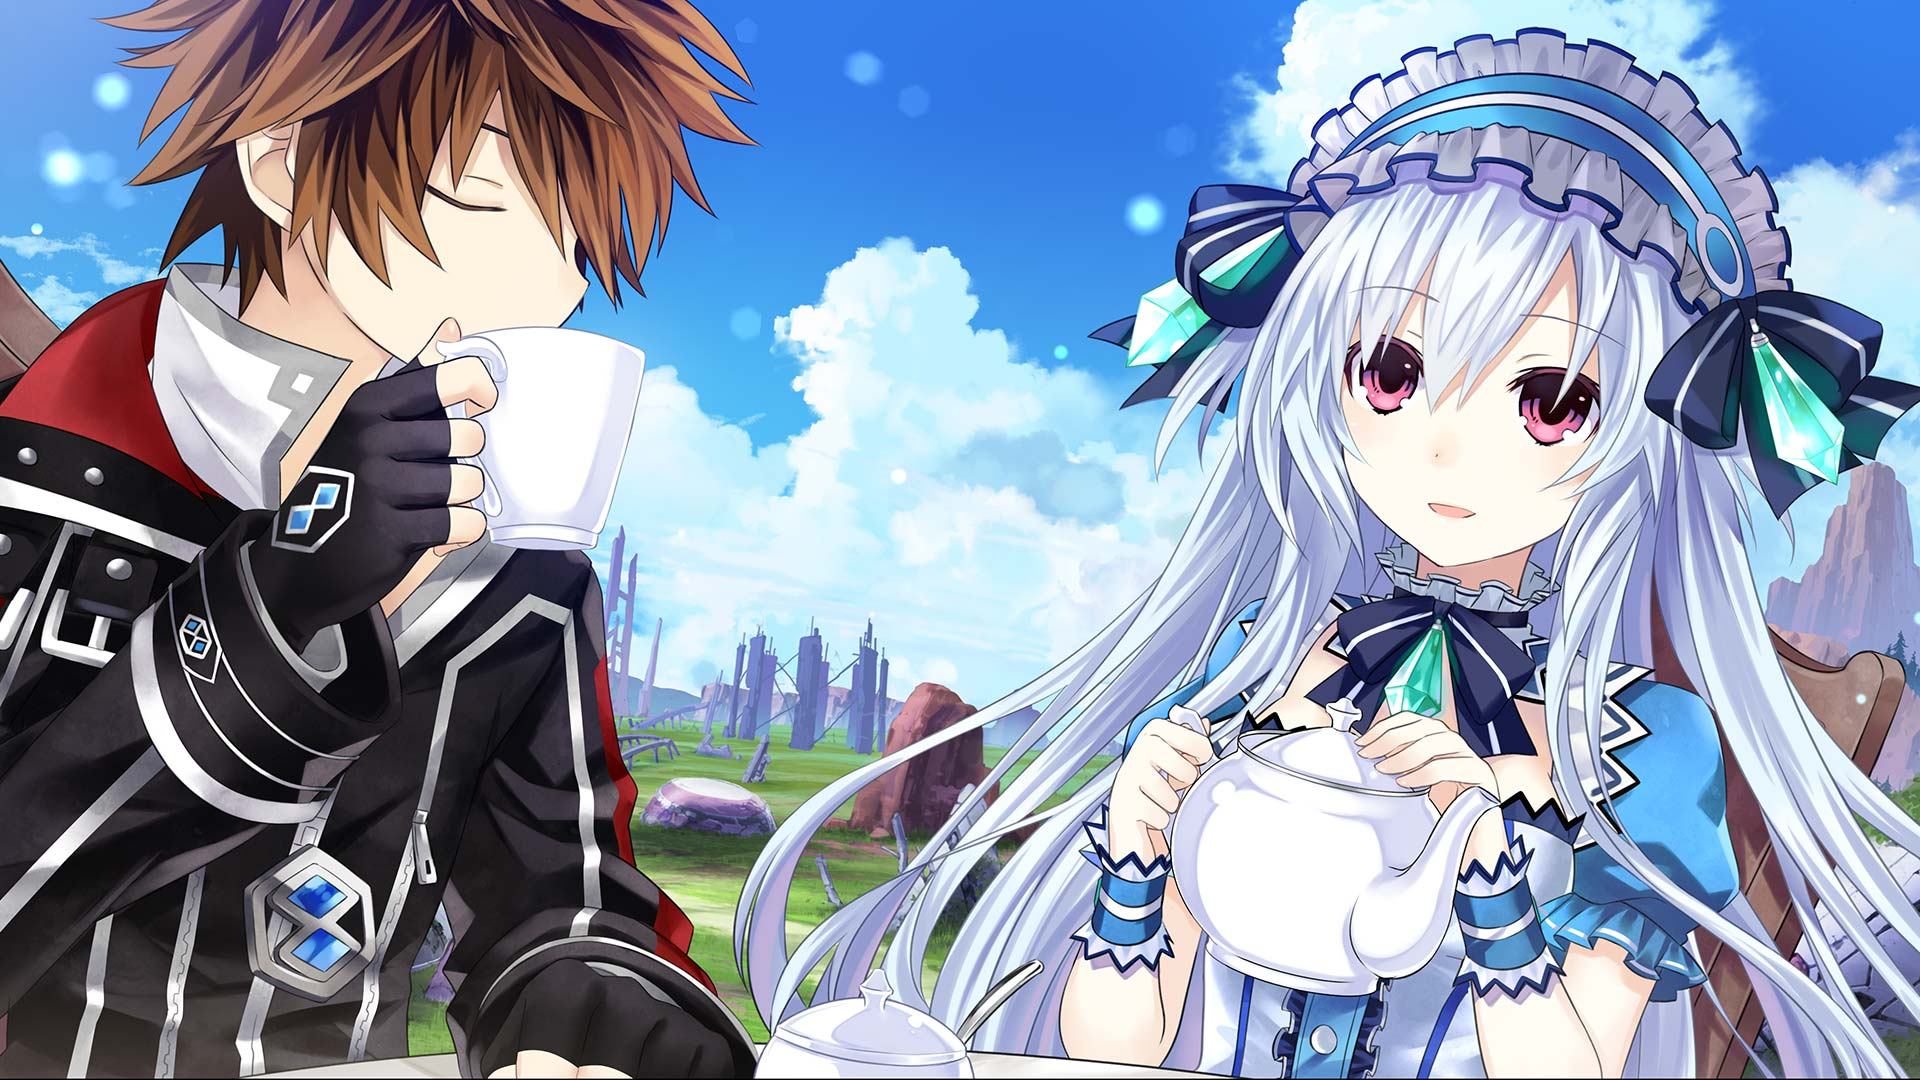 Fairy Fencer F: Advent Dark Force Wallpaper 017 – Fang and Tiara